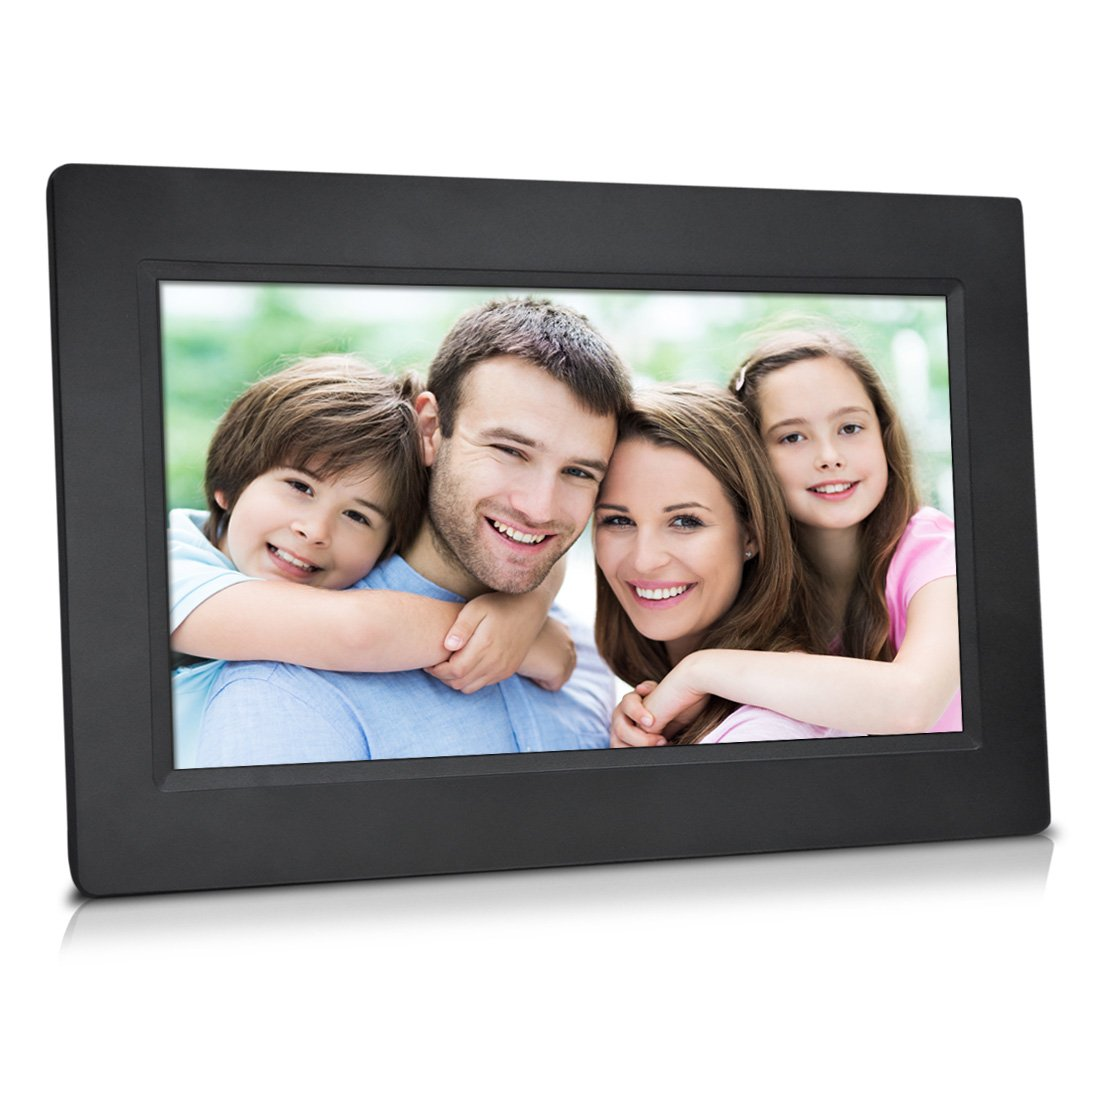 Sungale 10 Inch WiFi Cloud Digital Photo Frame with Touch Panel, Free Cloud Storage, High-Resolution 1024x600 LED Display (Black) by Sungale